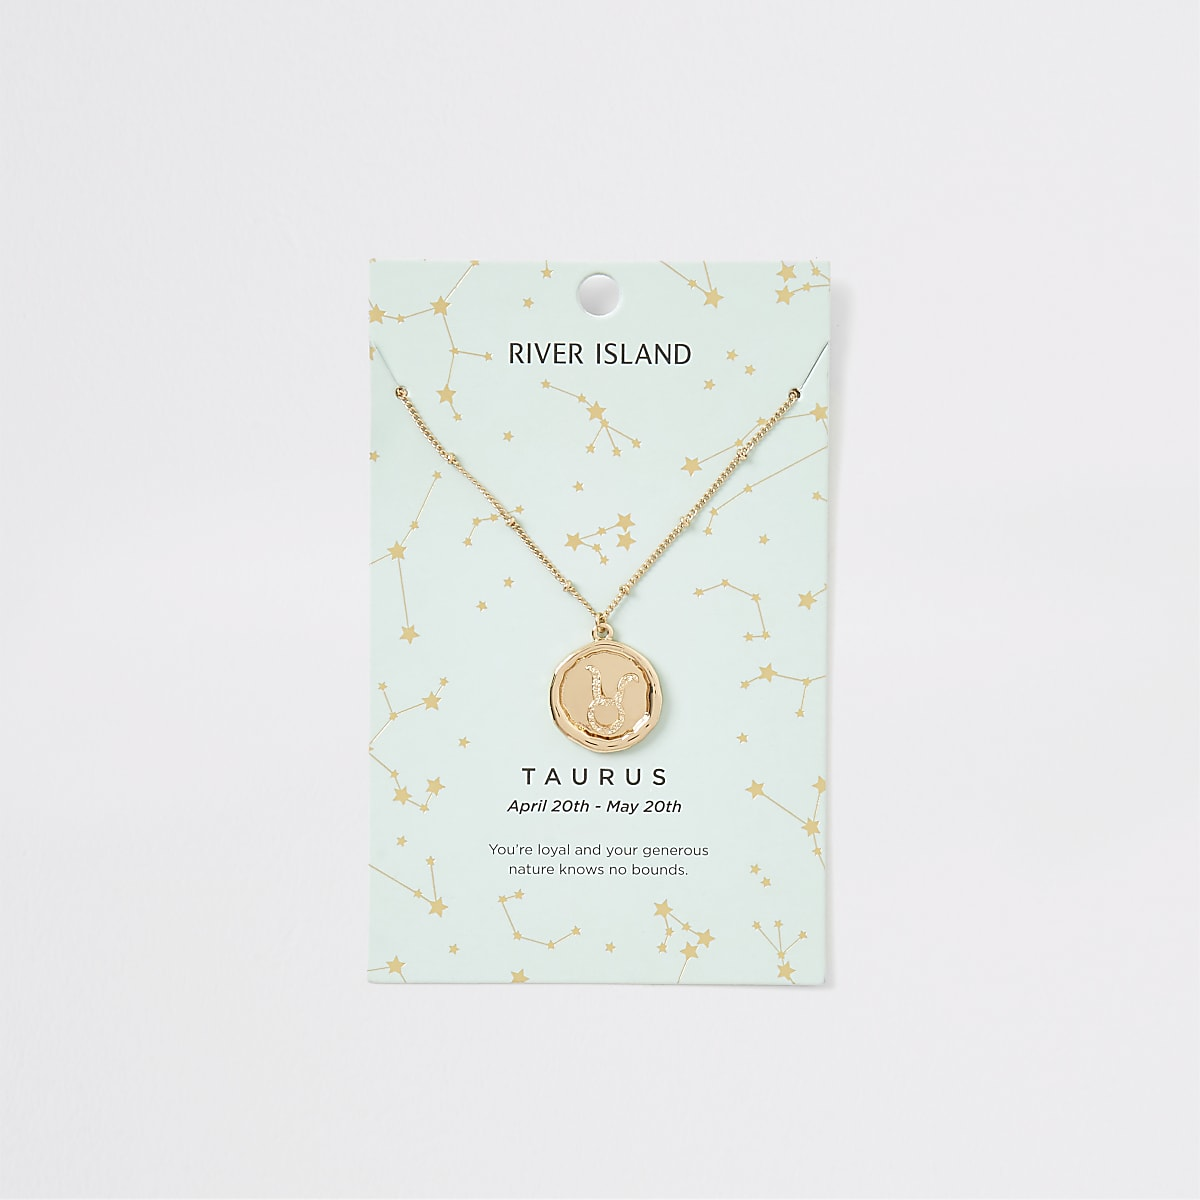 Taurus zodiac sign gold colour necklace